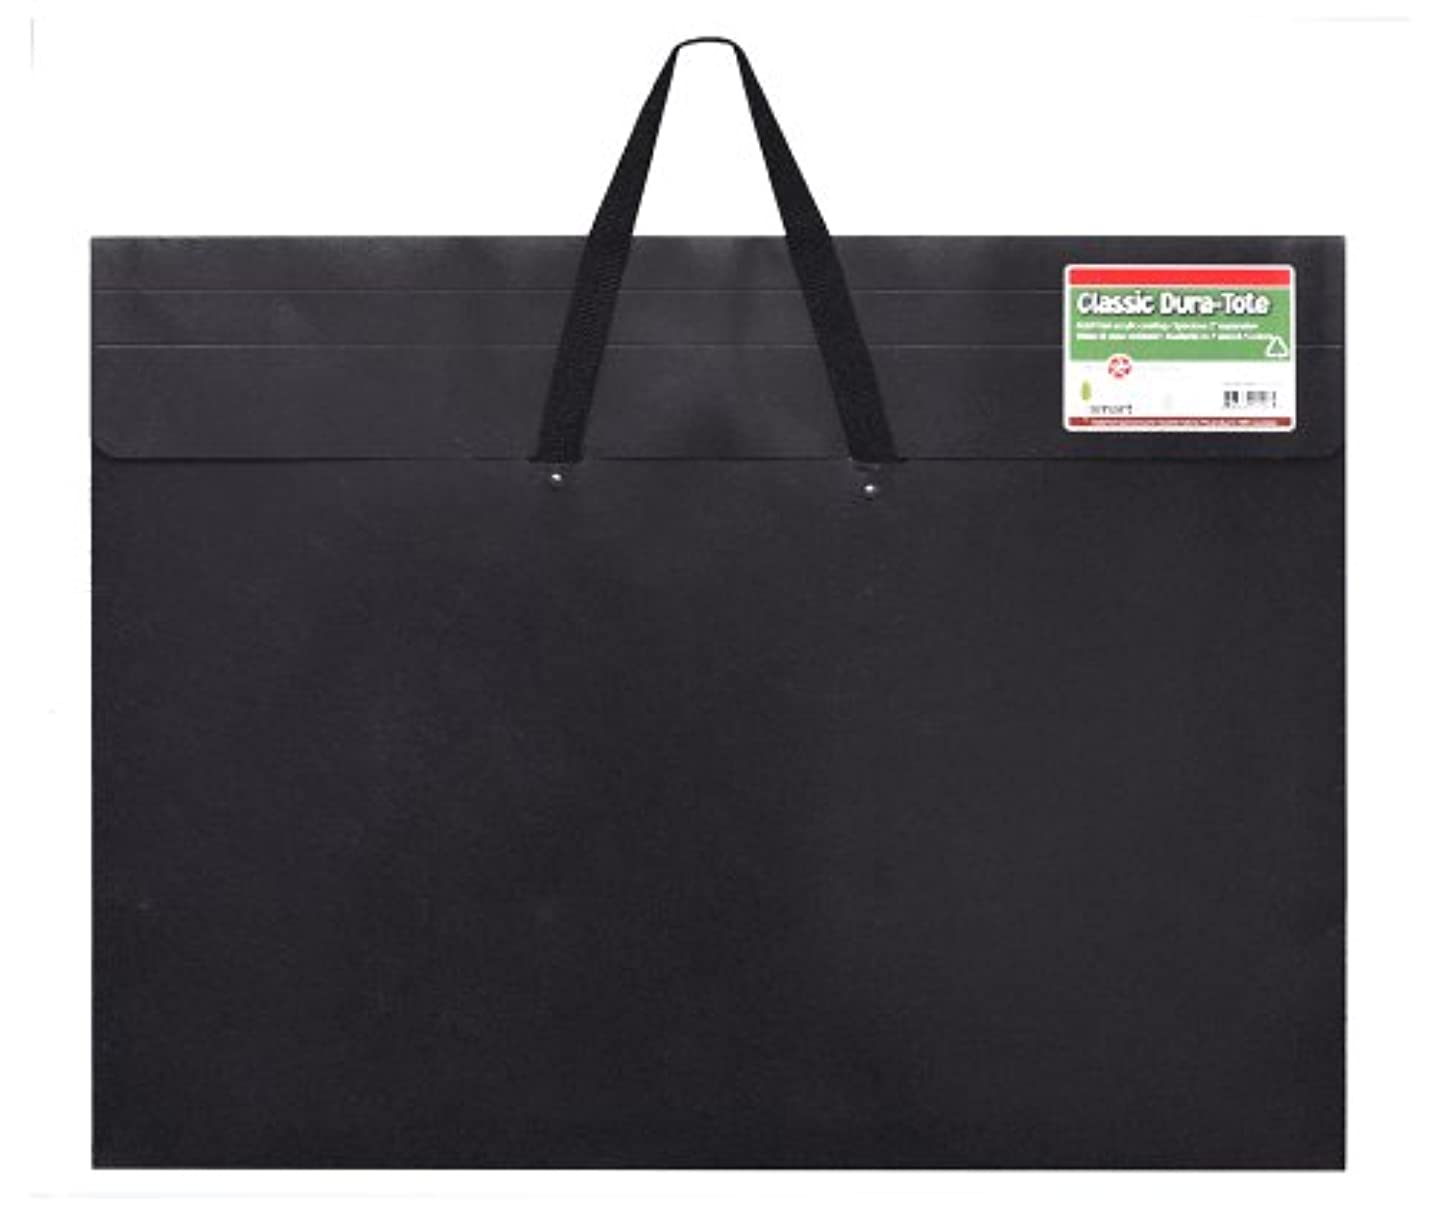 Star Products Classic Dura-Tote Portfolio 17-Inch by 22-Inch, Black with Reclosable Fastener